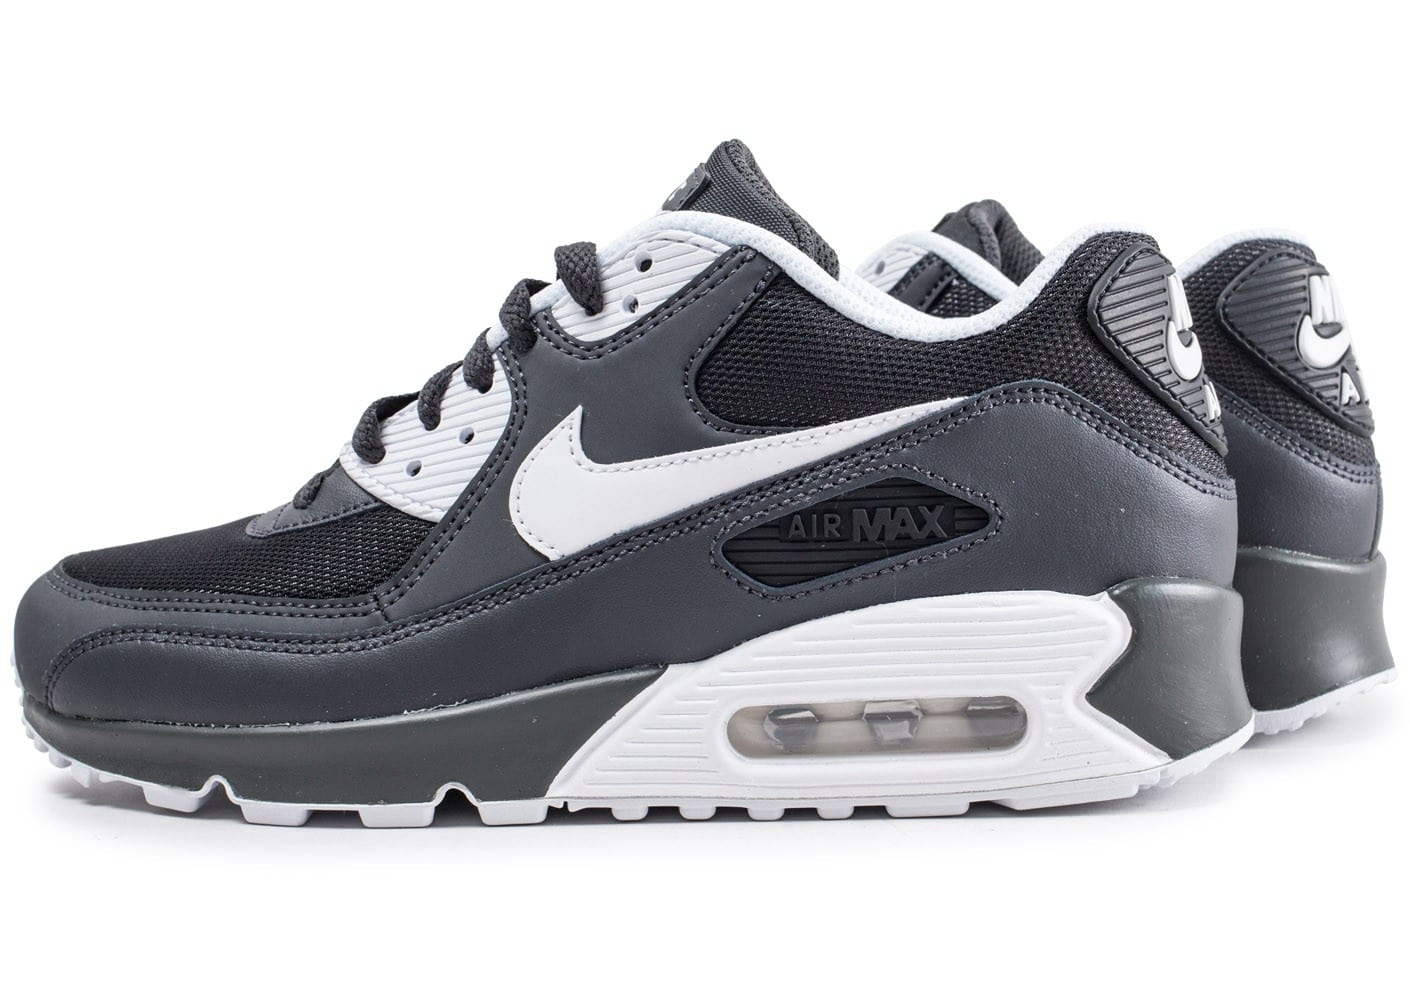 nike air max 95 femme chaussures gris foncer